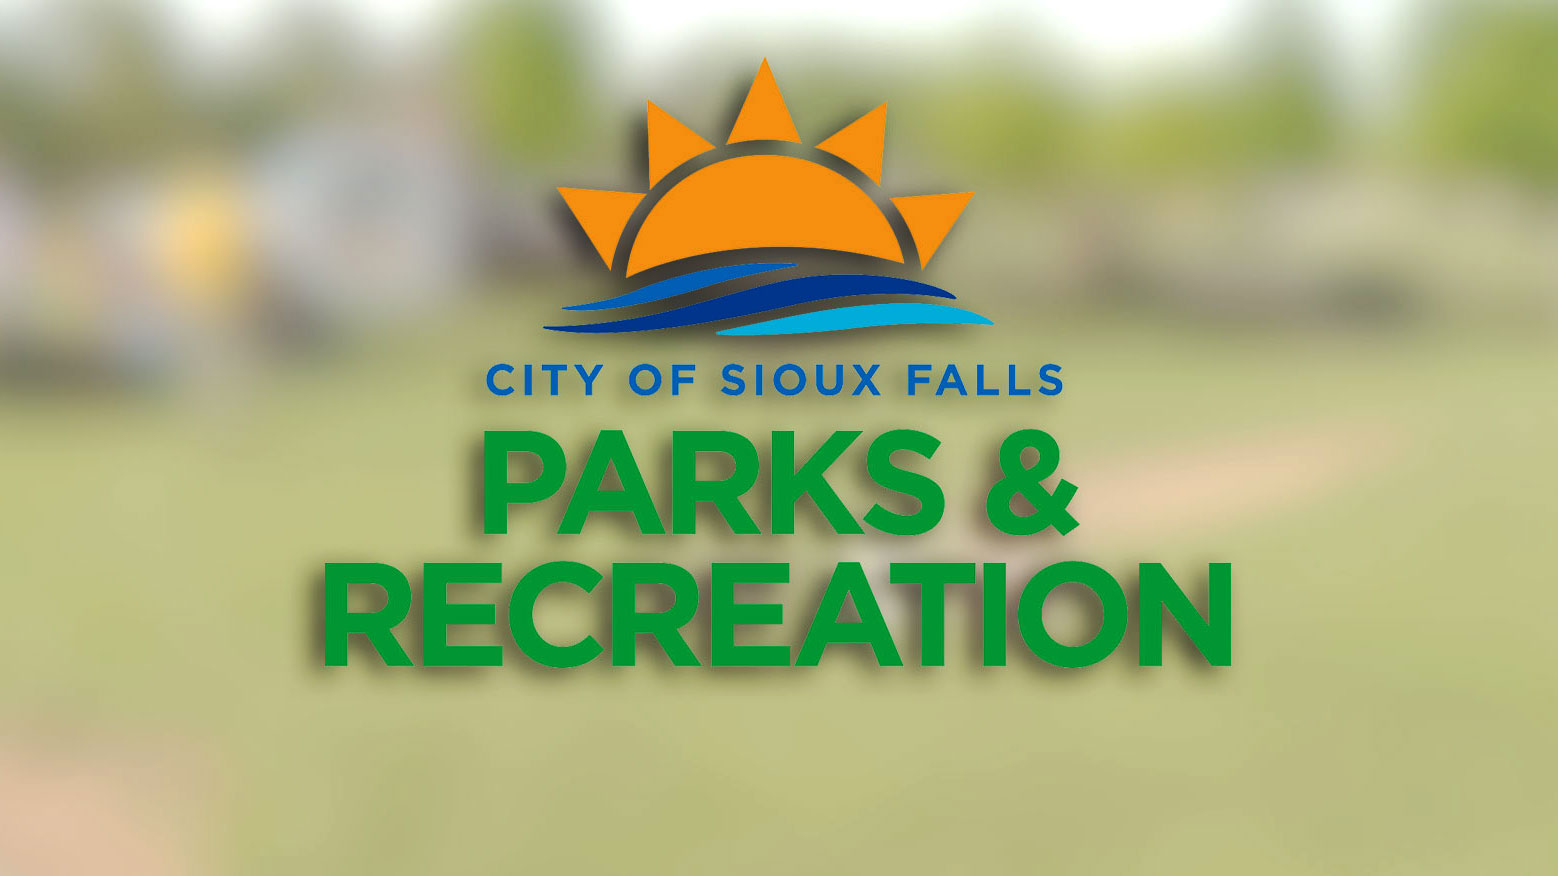 KELO sioux falls parks and recreation